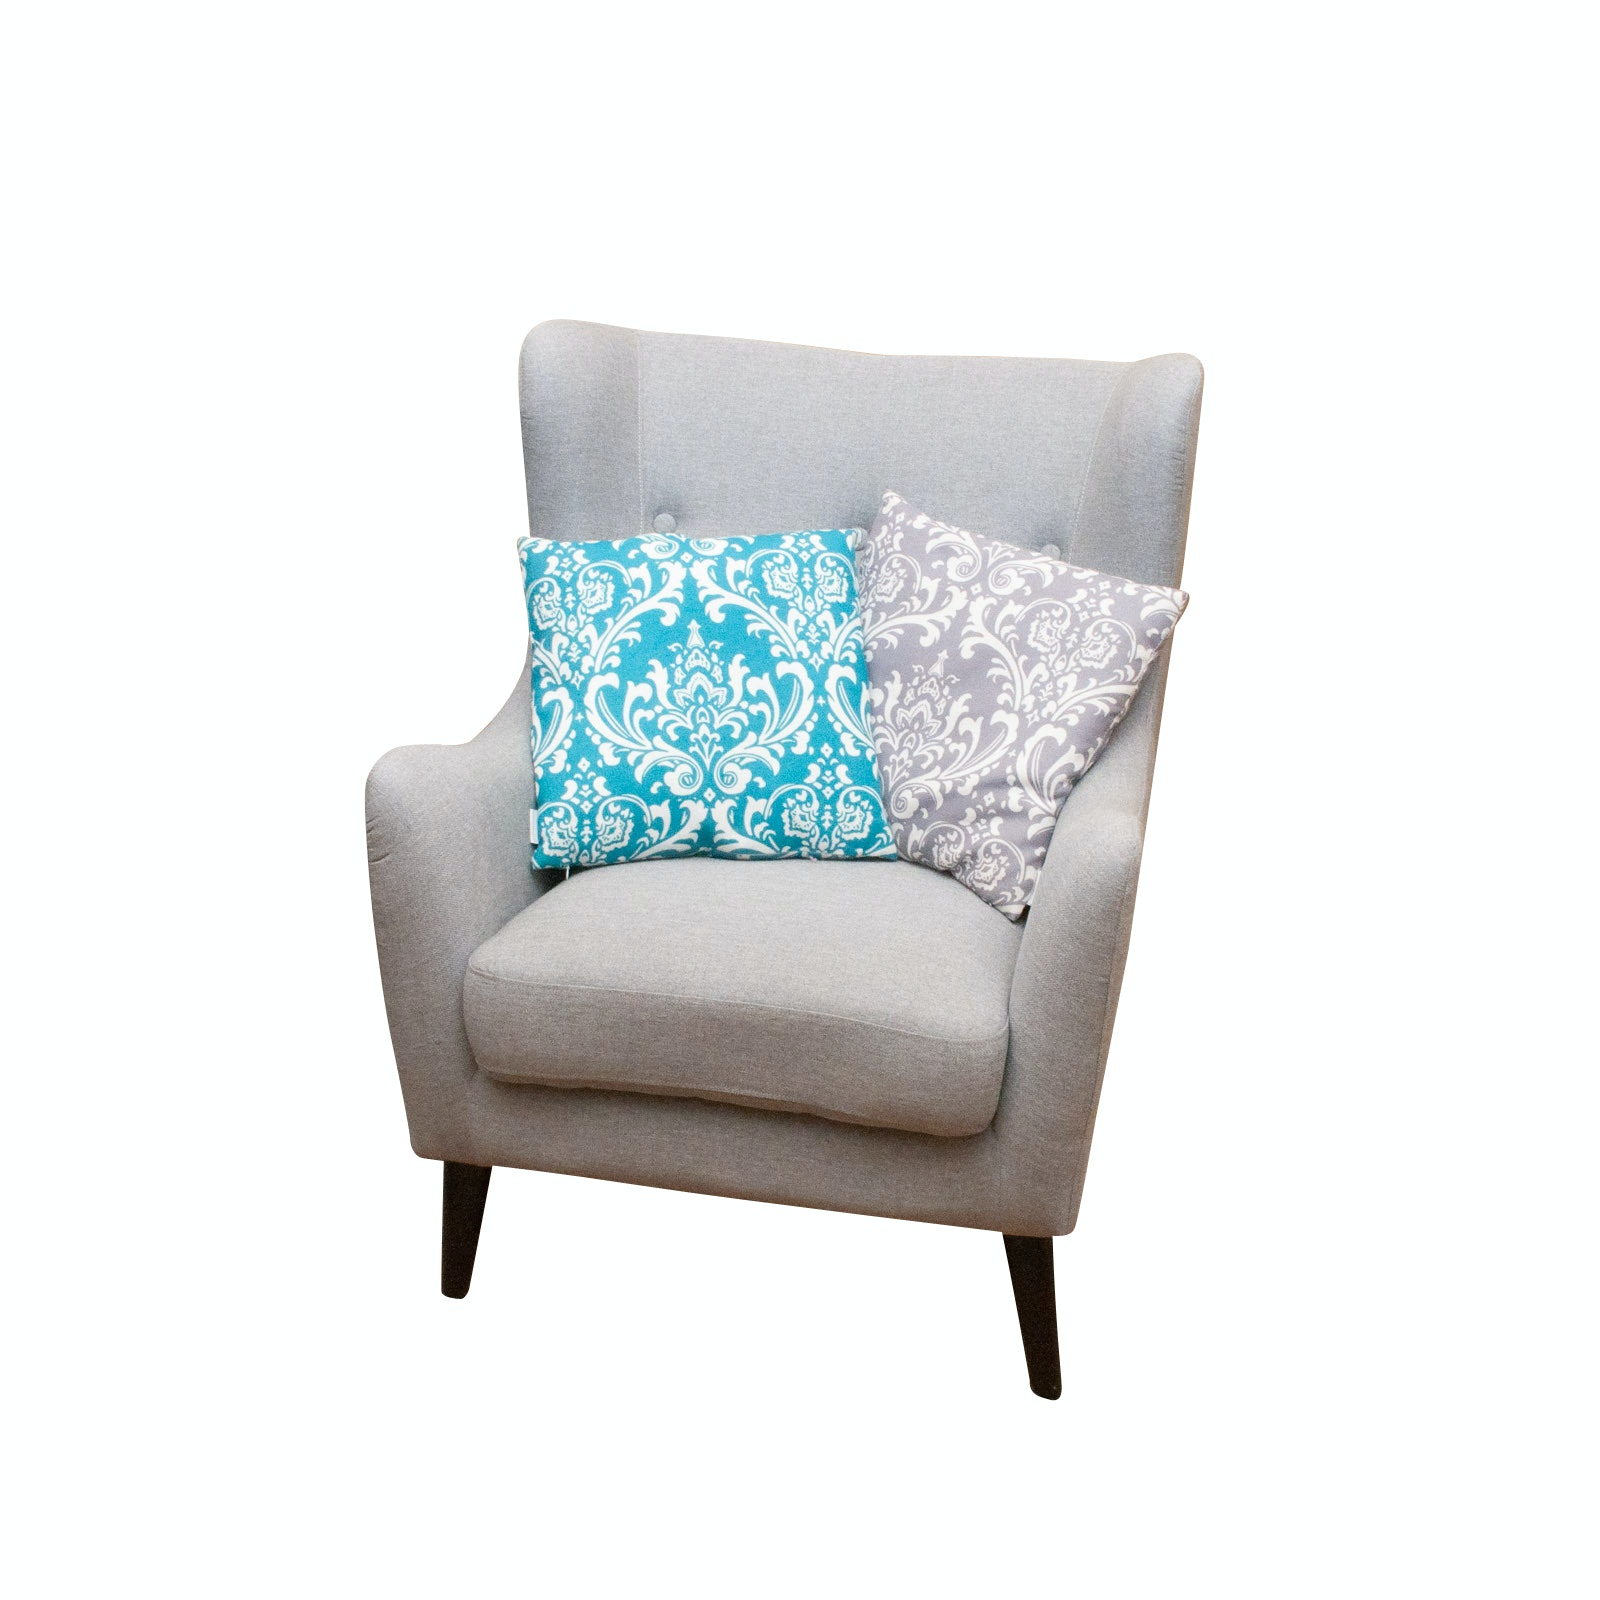 Contemporary Wingback Chair with Accent Pillows